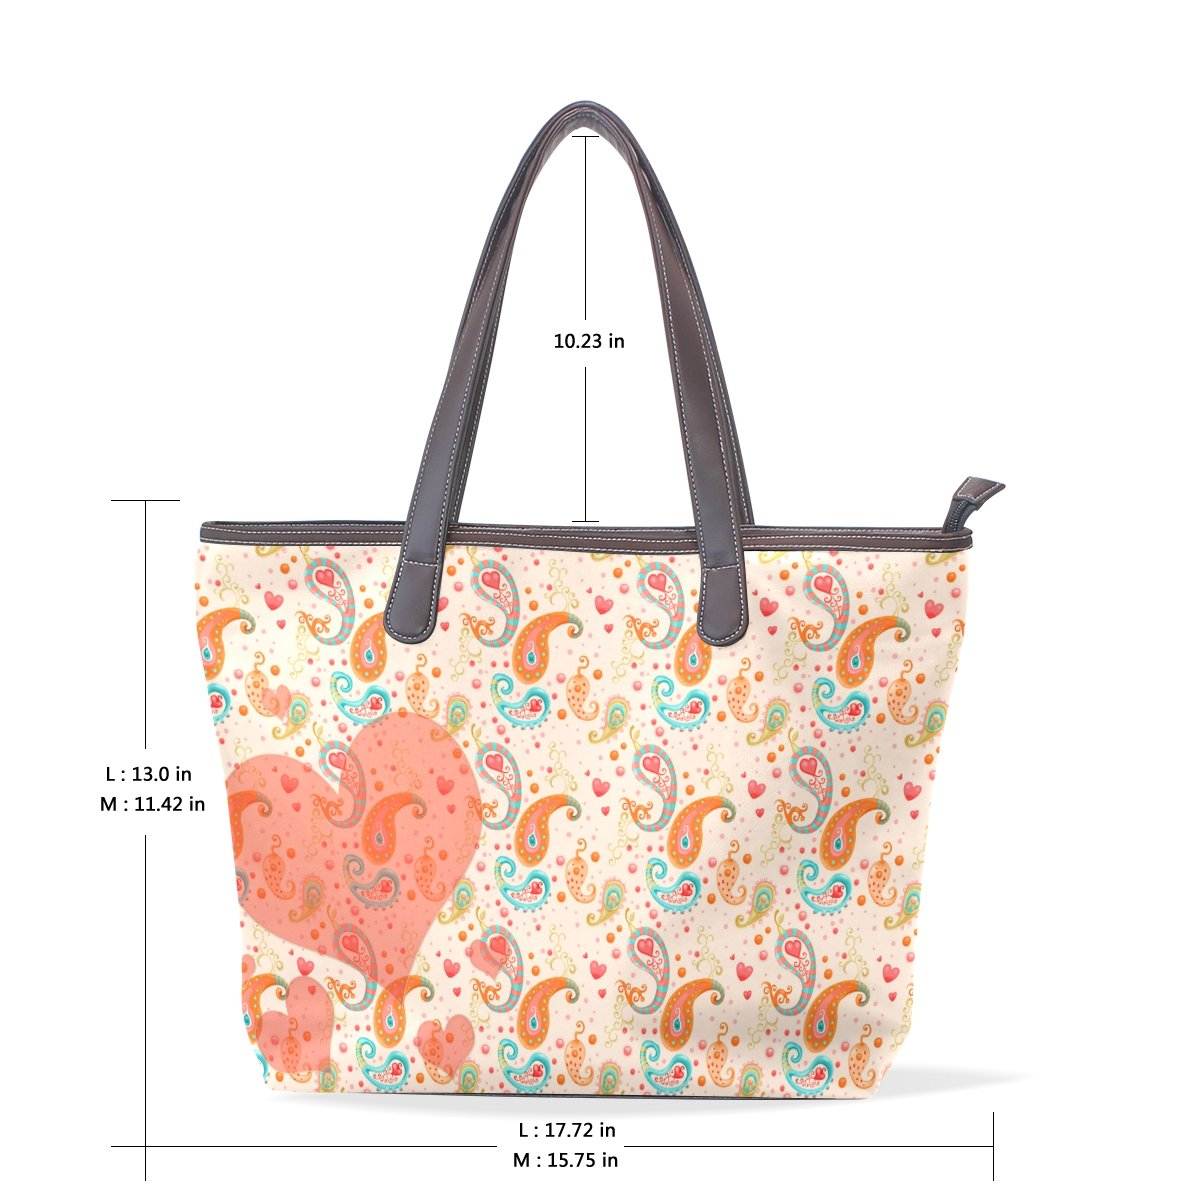 Sunlome Abstarct Floral Paisley Handbags For Women Girls PU Leather Shoulder Tote Bag